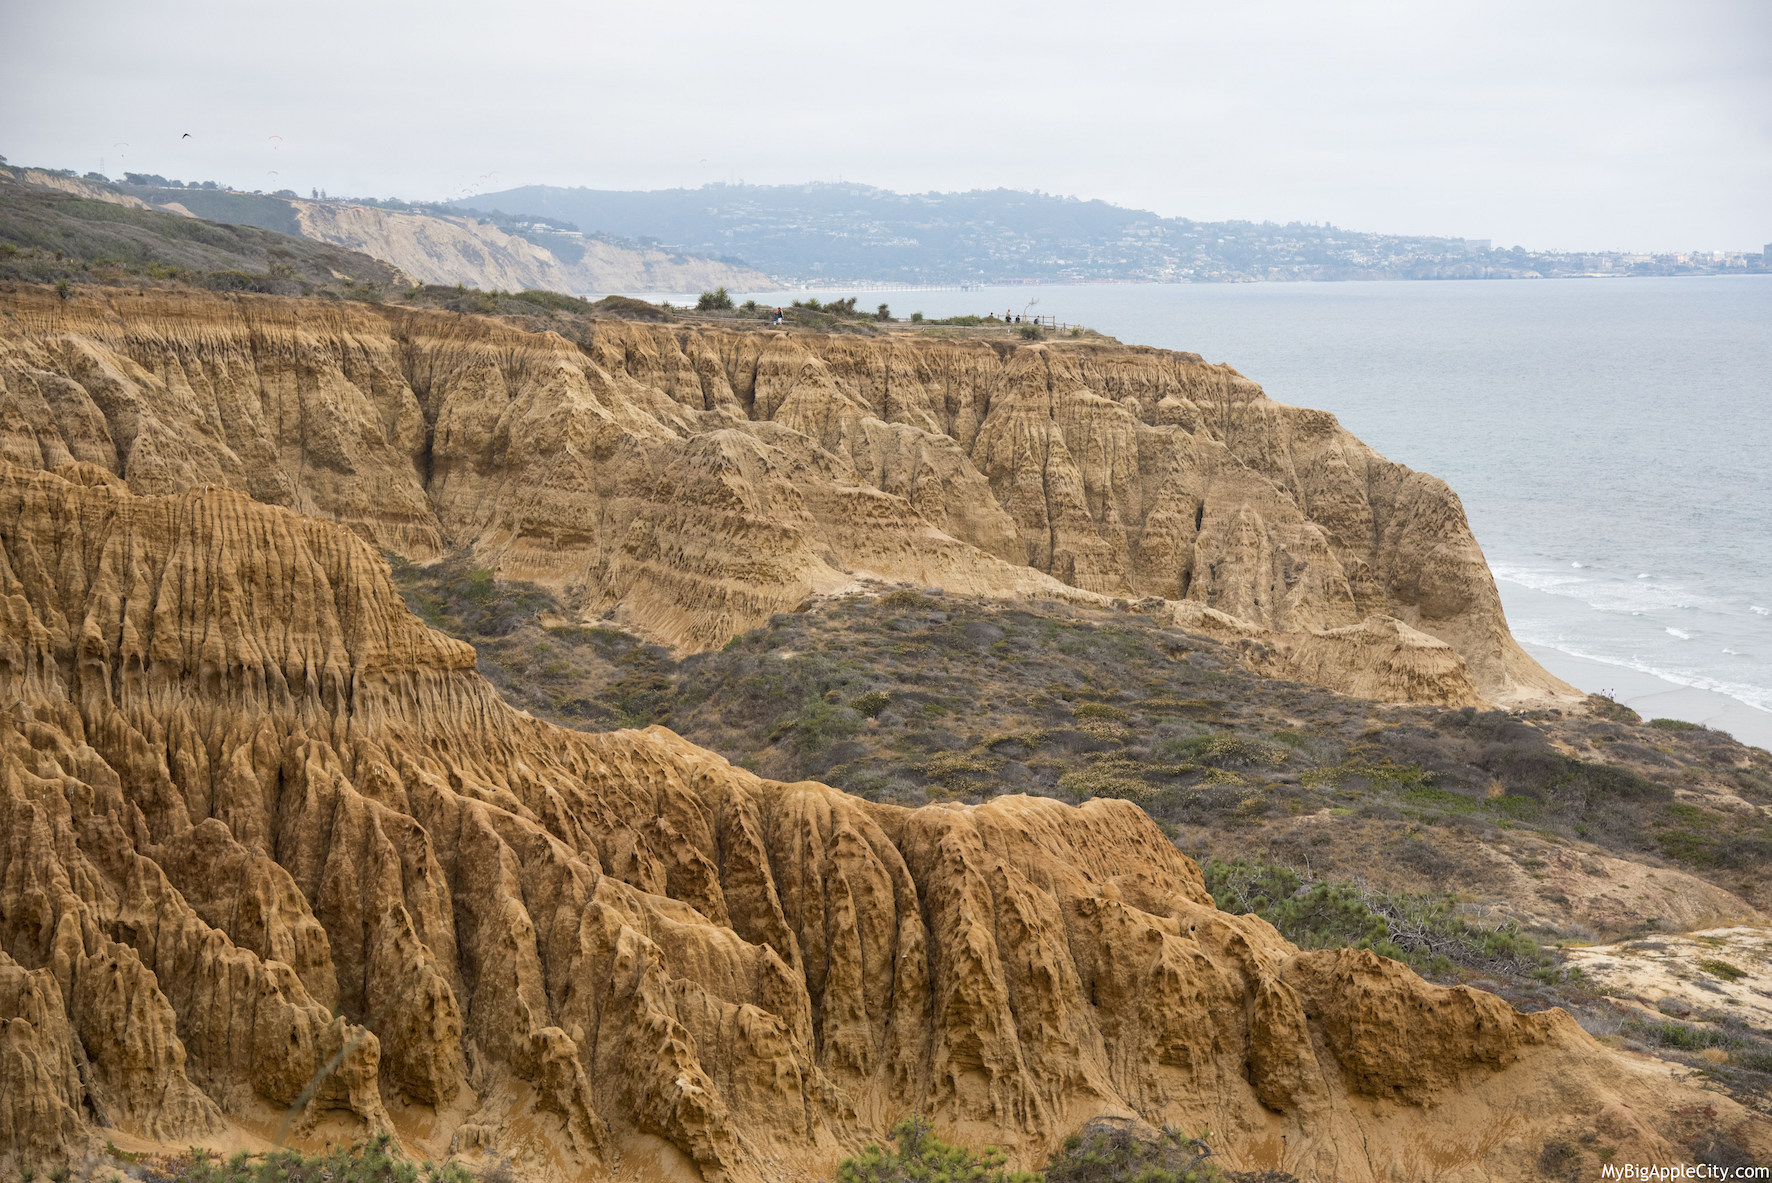 Torrey-Pines-Hiking-San-Diego-Travel-Blogger-USA-MyBigAppleCity